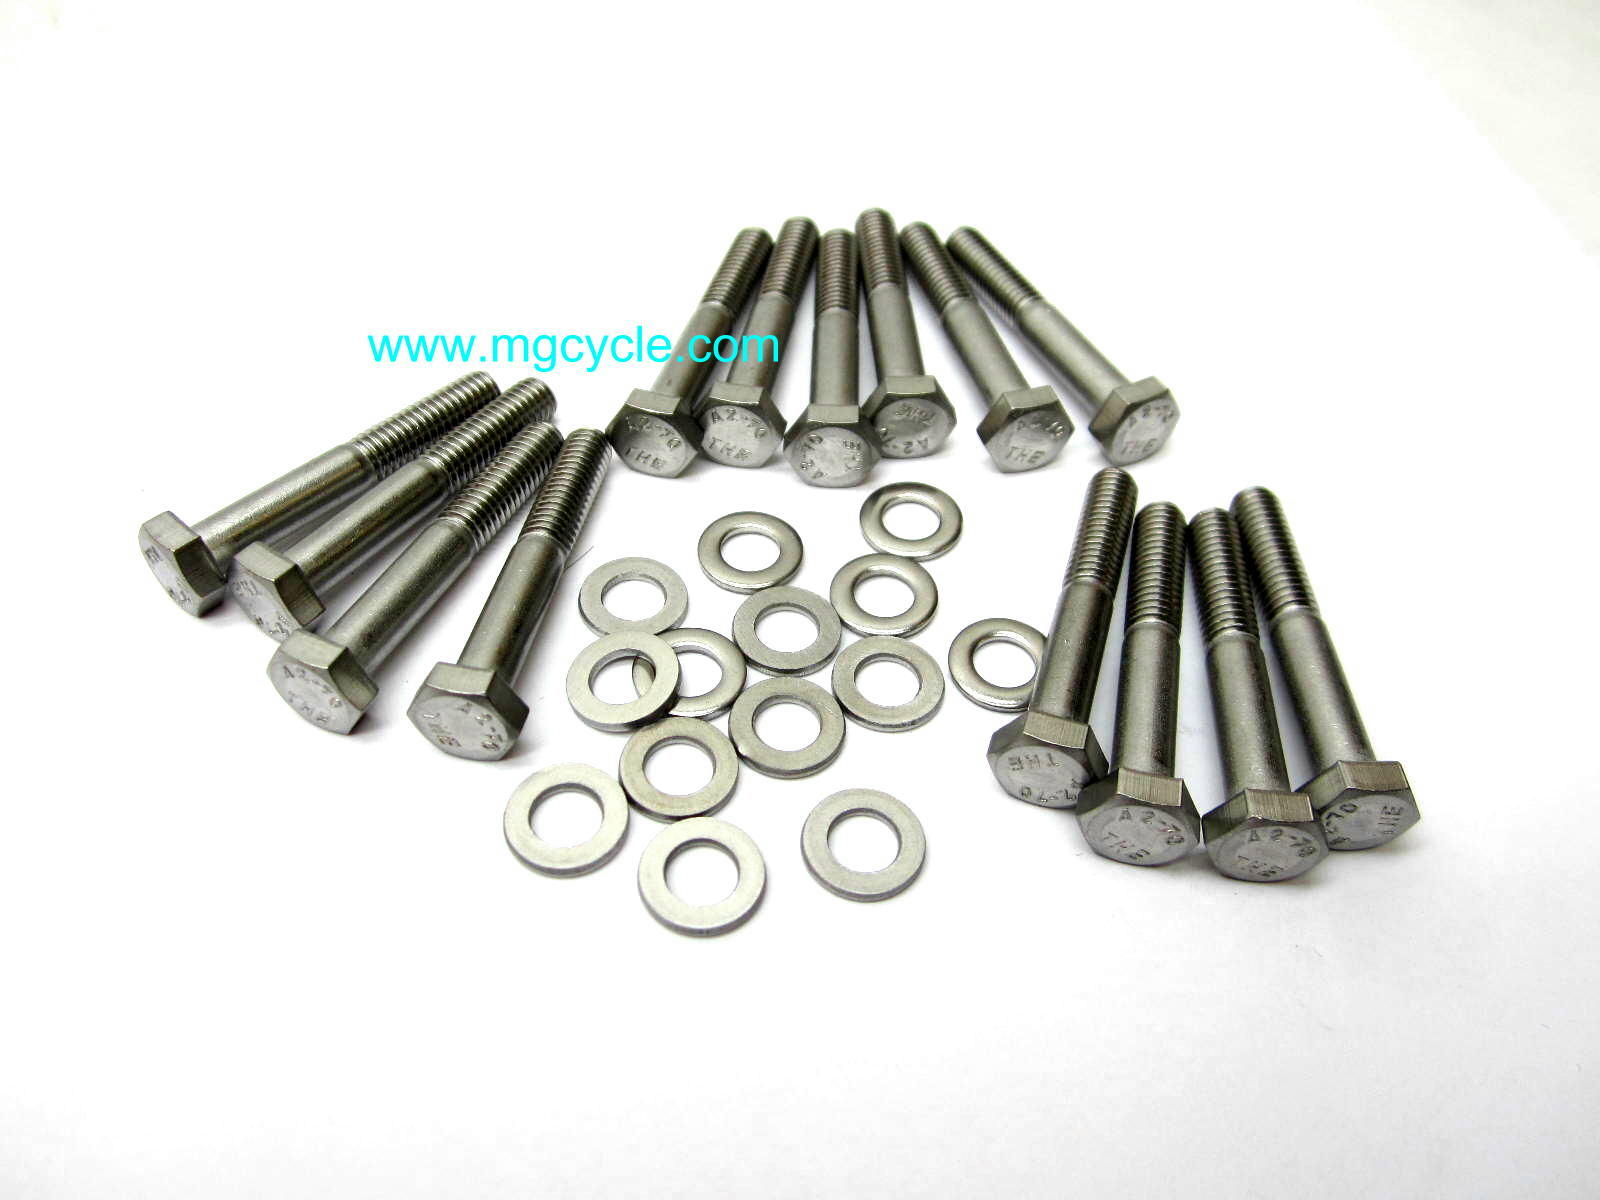 stainless oil pan bolt kit for V700, V7 Sport, 850T